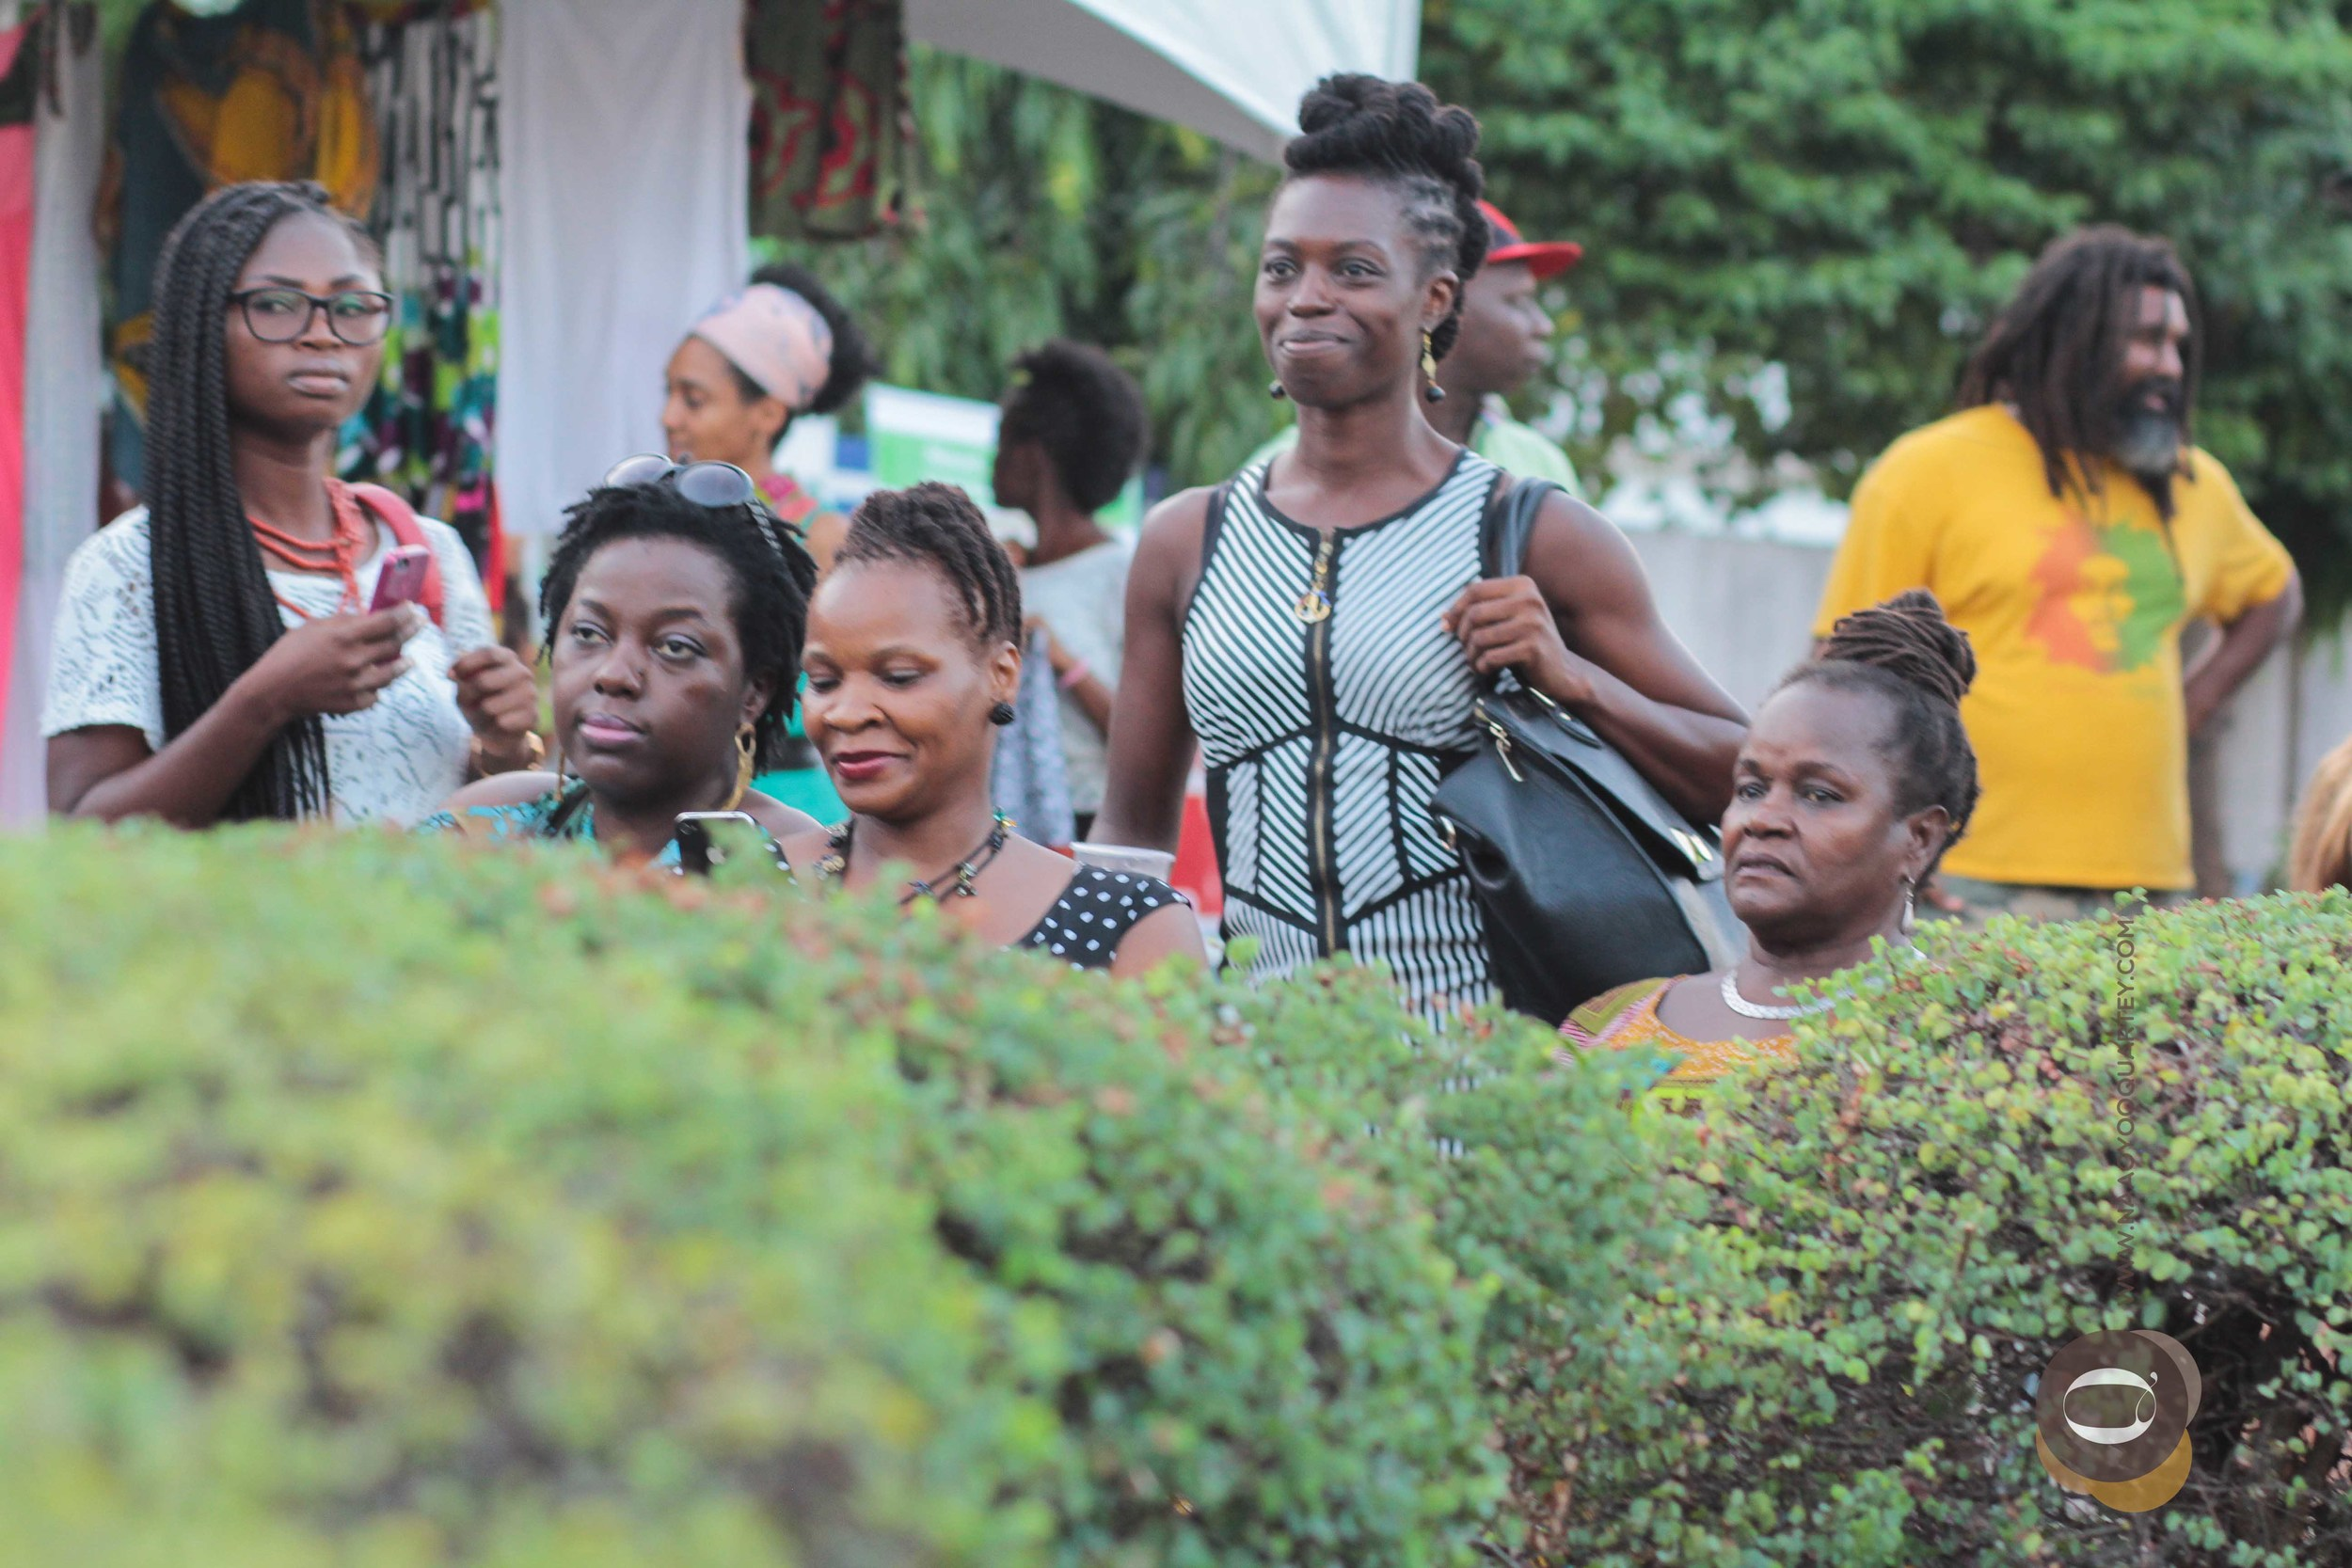 a section of participants during the spoken word session.